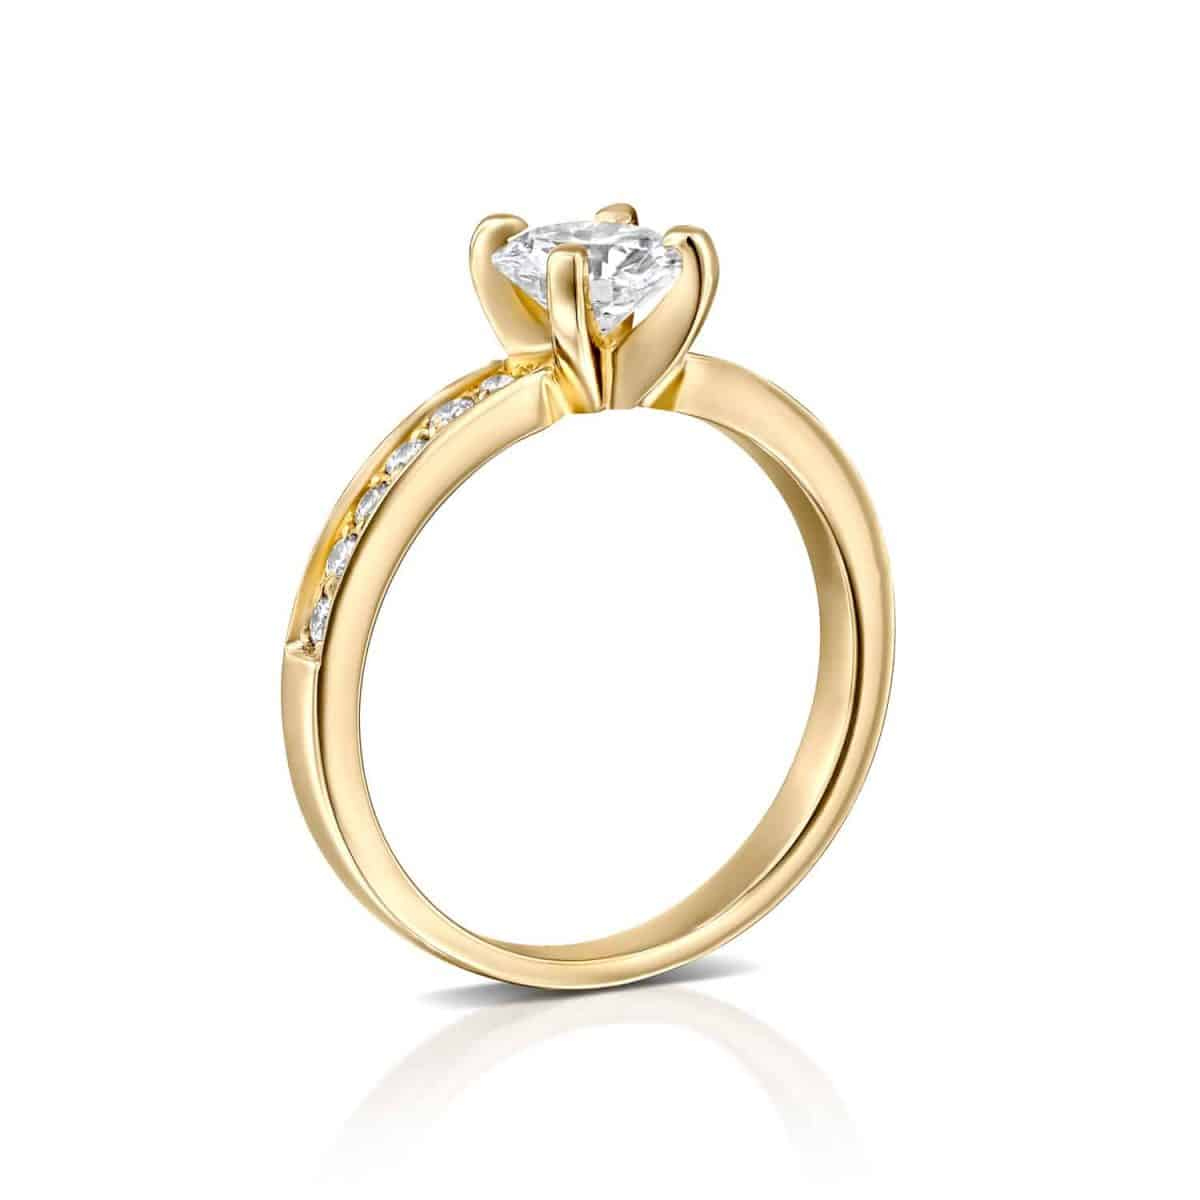 Lena - Lab Grown Diamond Engagement Ring 1.10ct. - standing